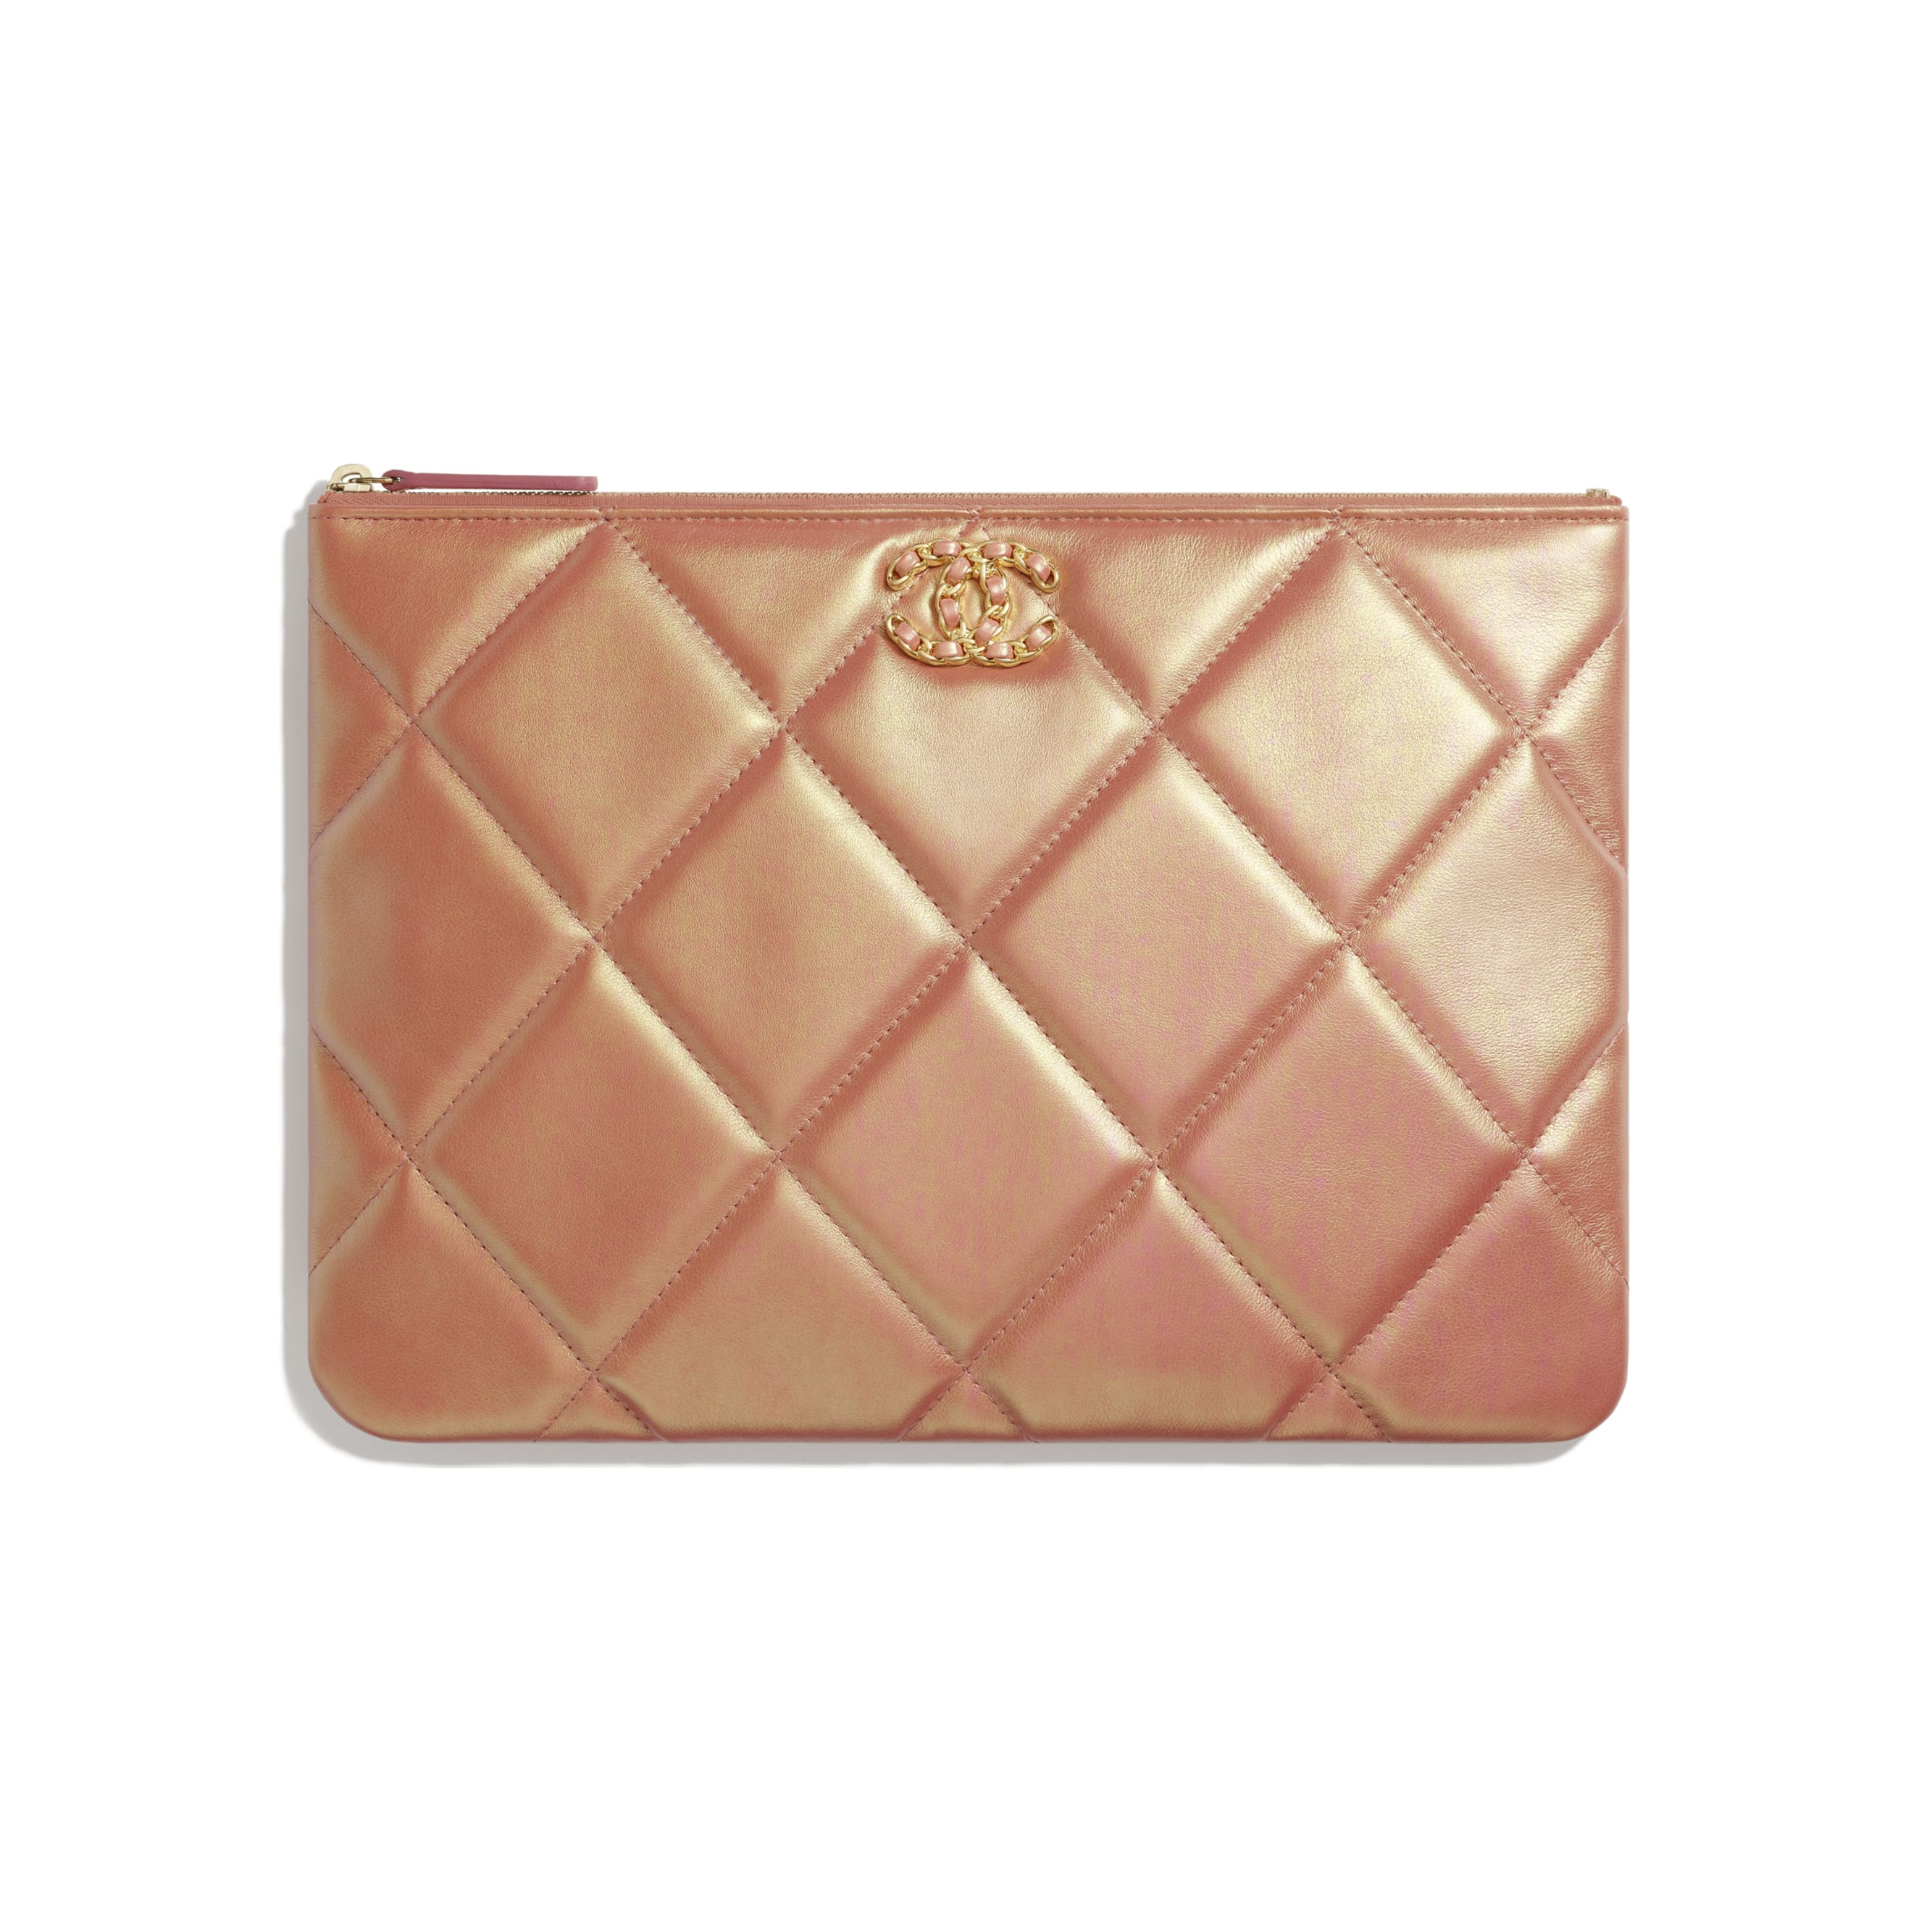 CHANEL 19 Pouch - Pink - Iridescent Calfskin, Gold-Tone, Silver-Tone & Ruthenium-Finish Metal - CHANEL - Default view - see standard sized version